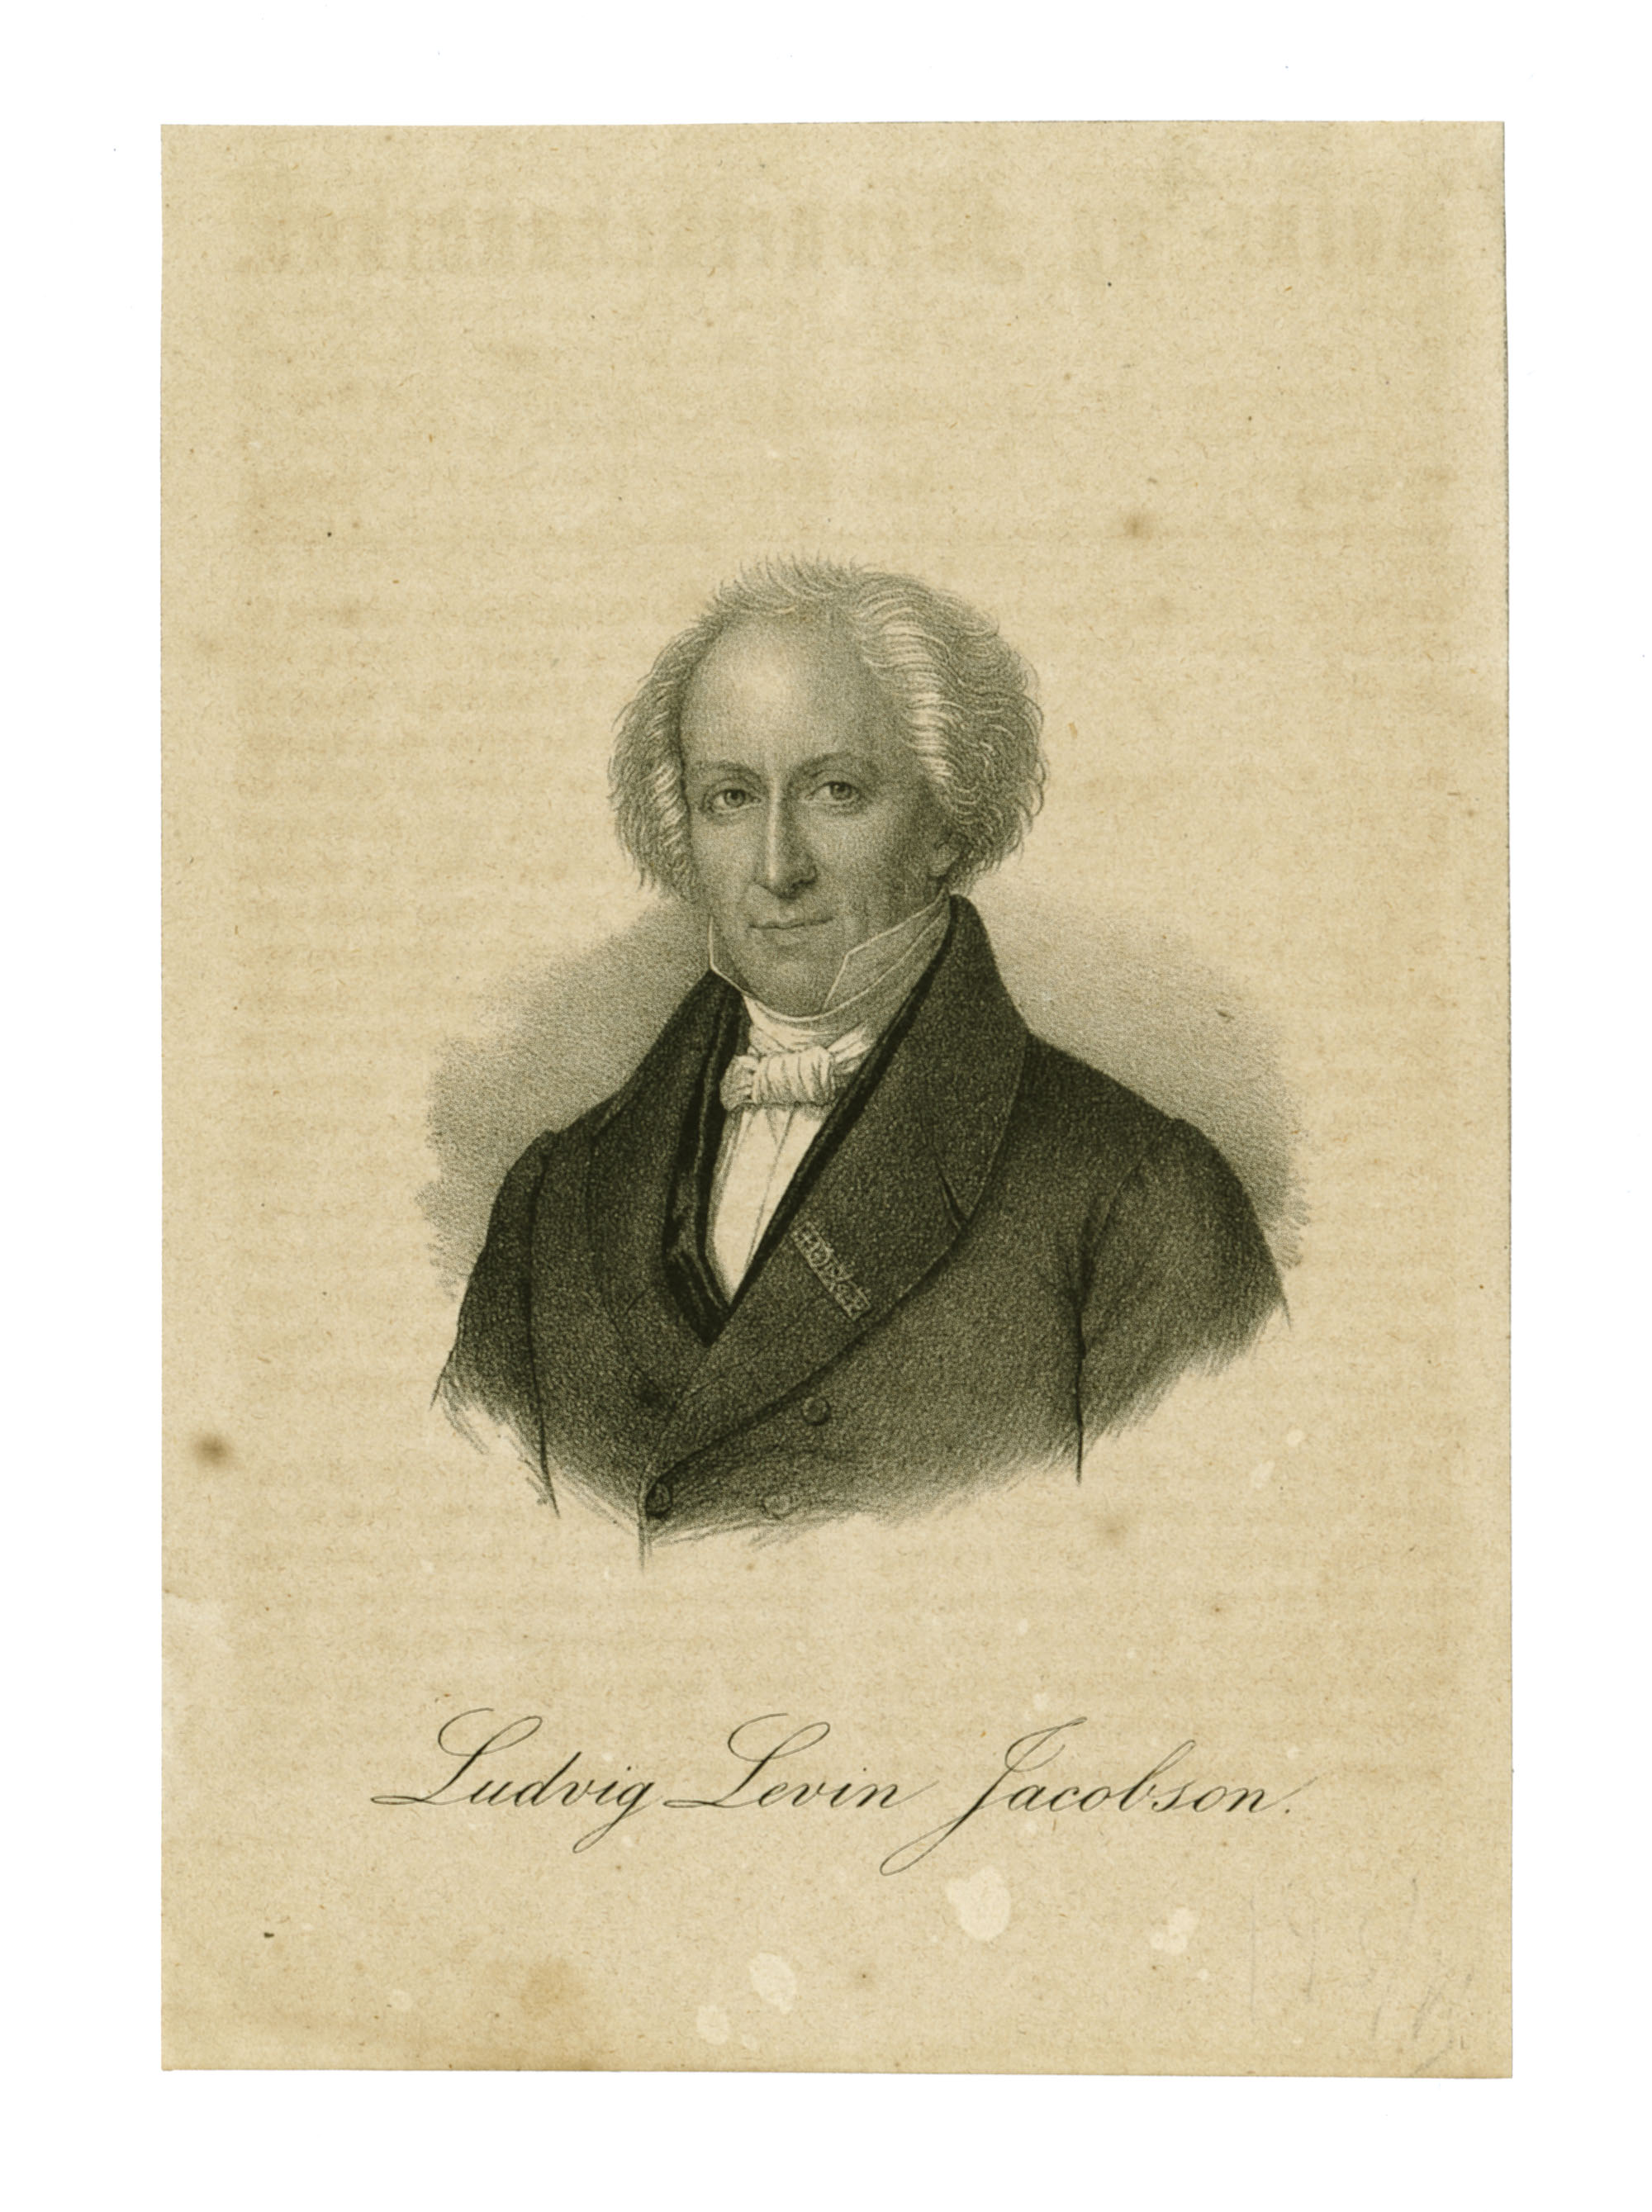 Ludvig Levin Jacobson